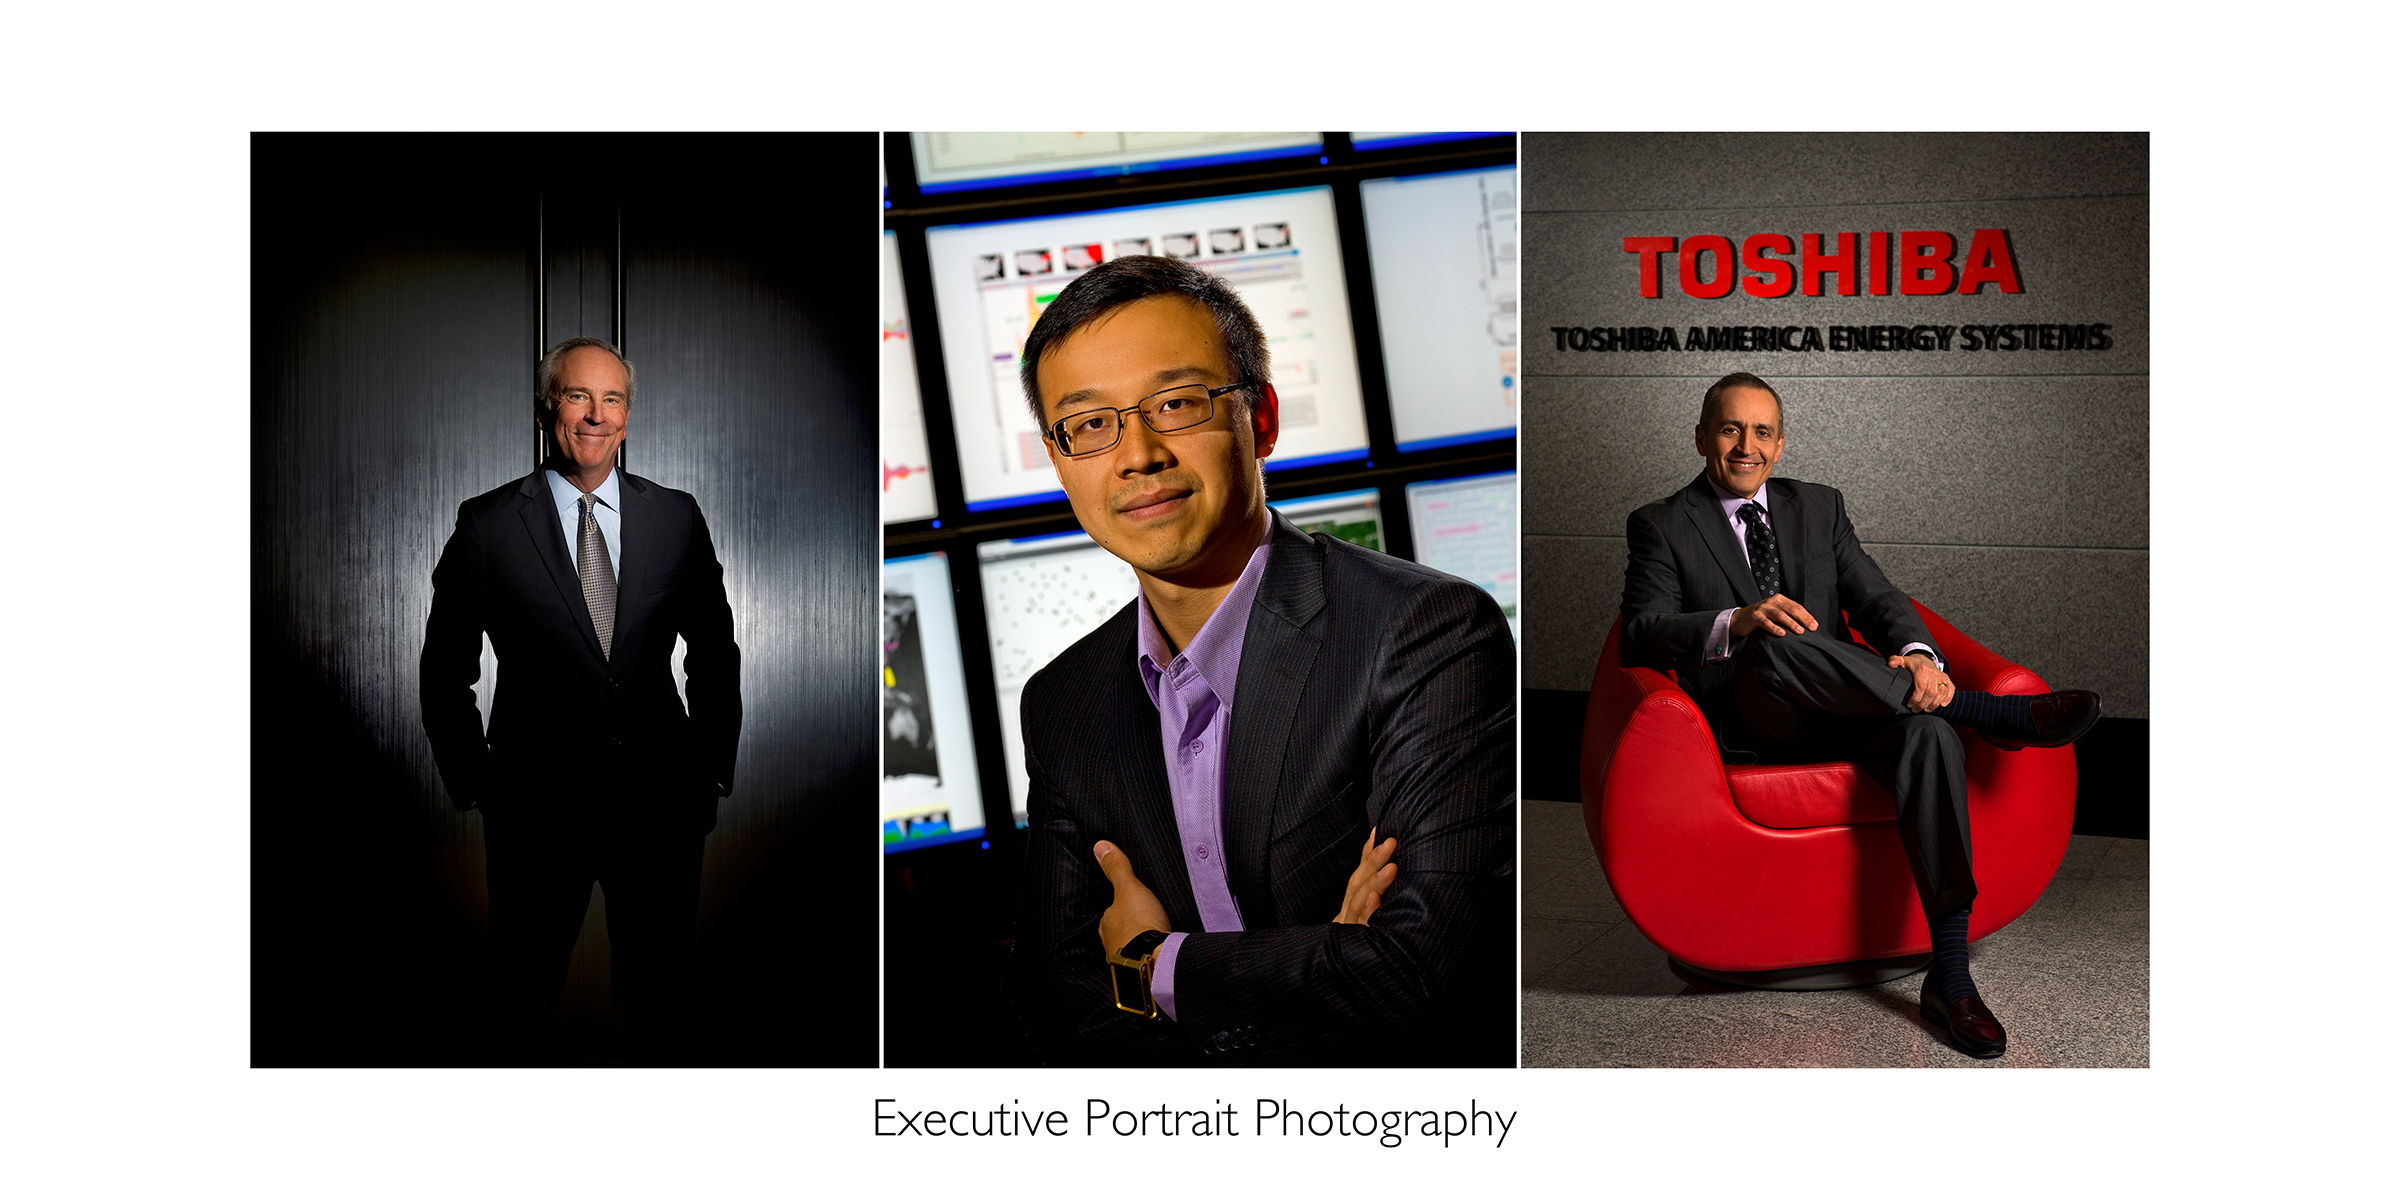 Collection of three photos that show the range of executive portraits made by Patrick Schneider Photography